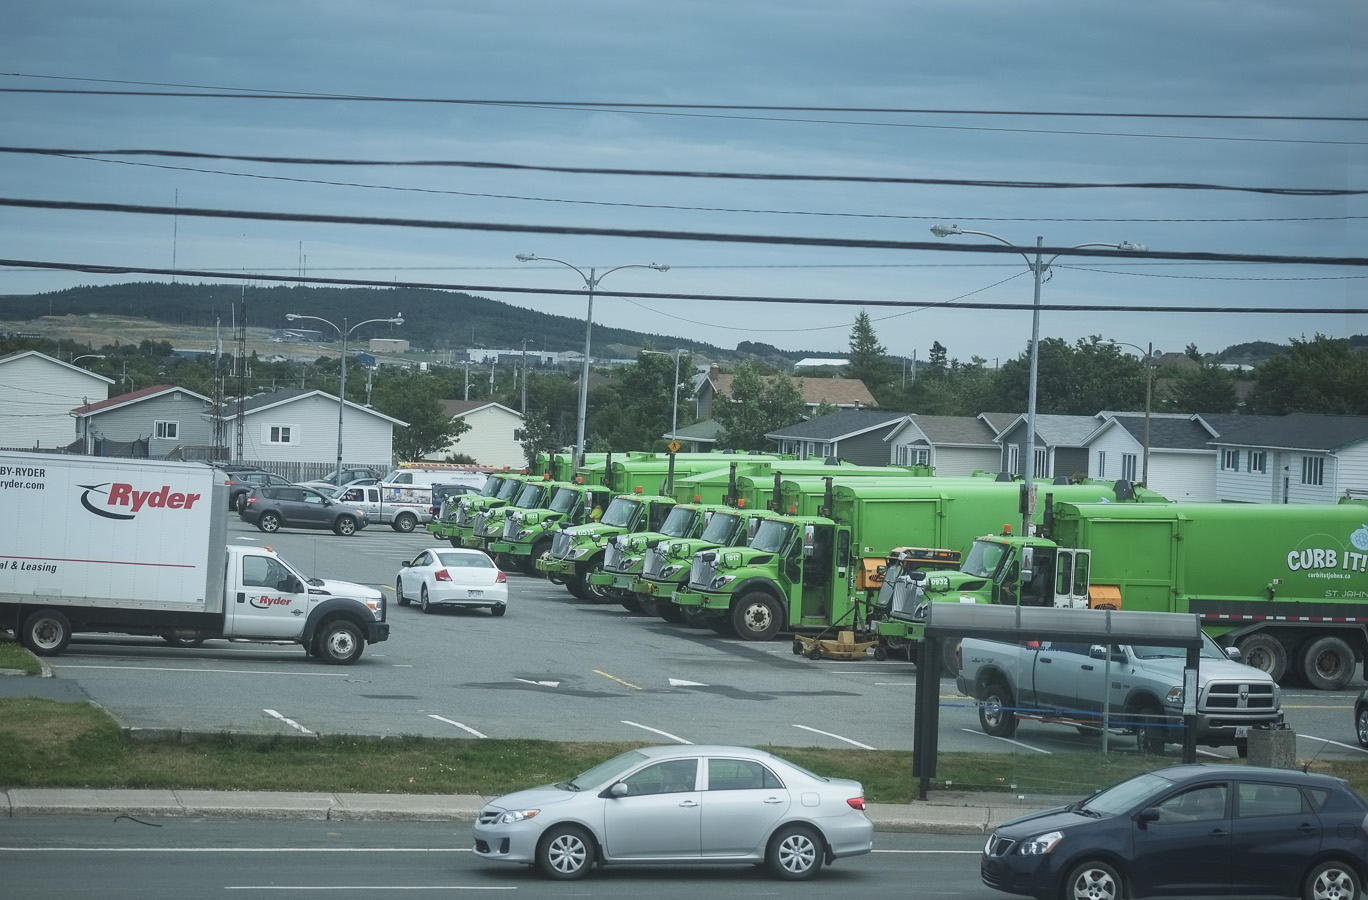 A large grouping of Sanitation trucks - Newfoundland Drive